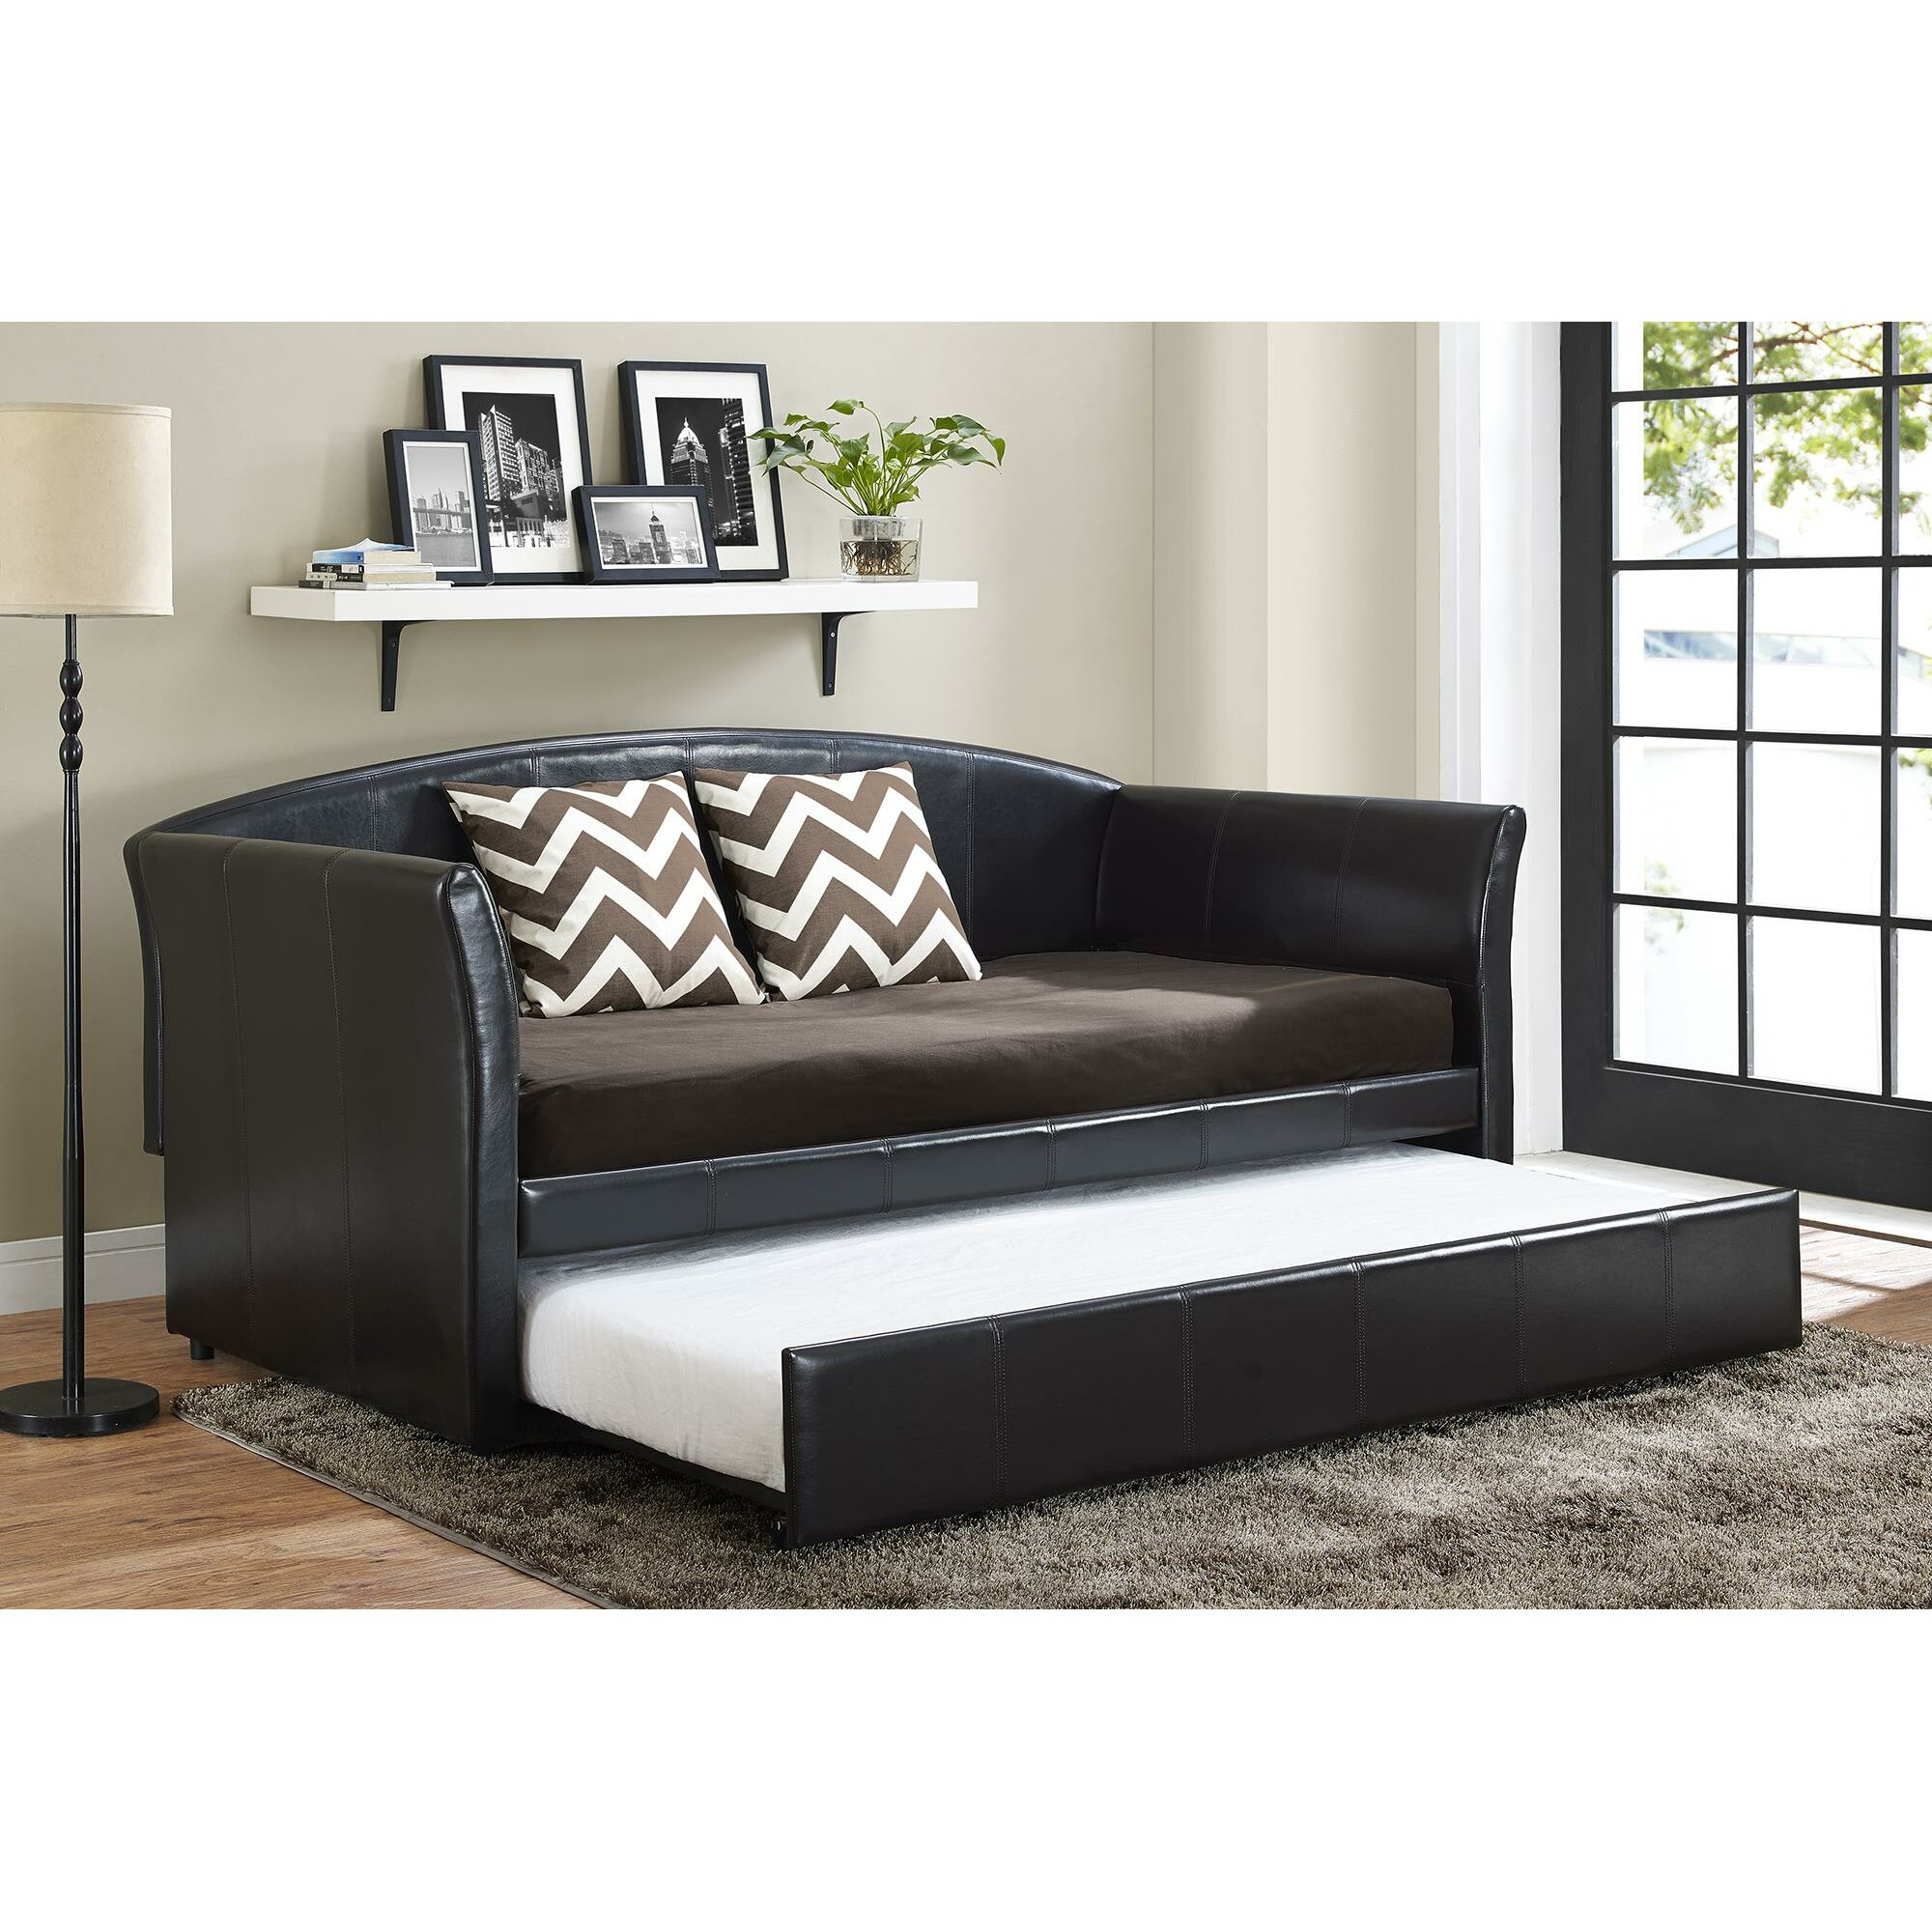 DHP Halle Daybed with Trundle amp Reviews Wayfair : Halle Daybed with Trundle 4019257 from www.wayfair.com size 2000 x 2000 jpeg 629kB